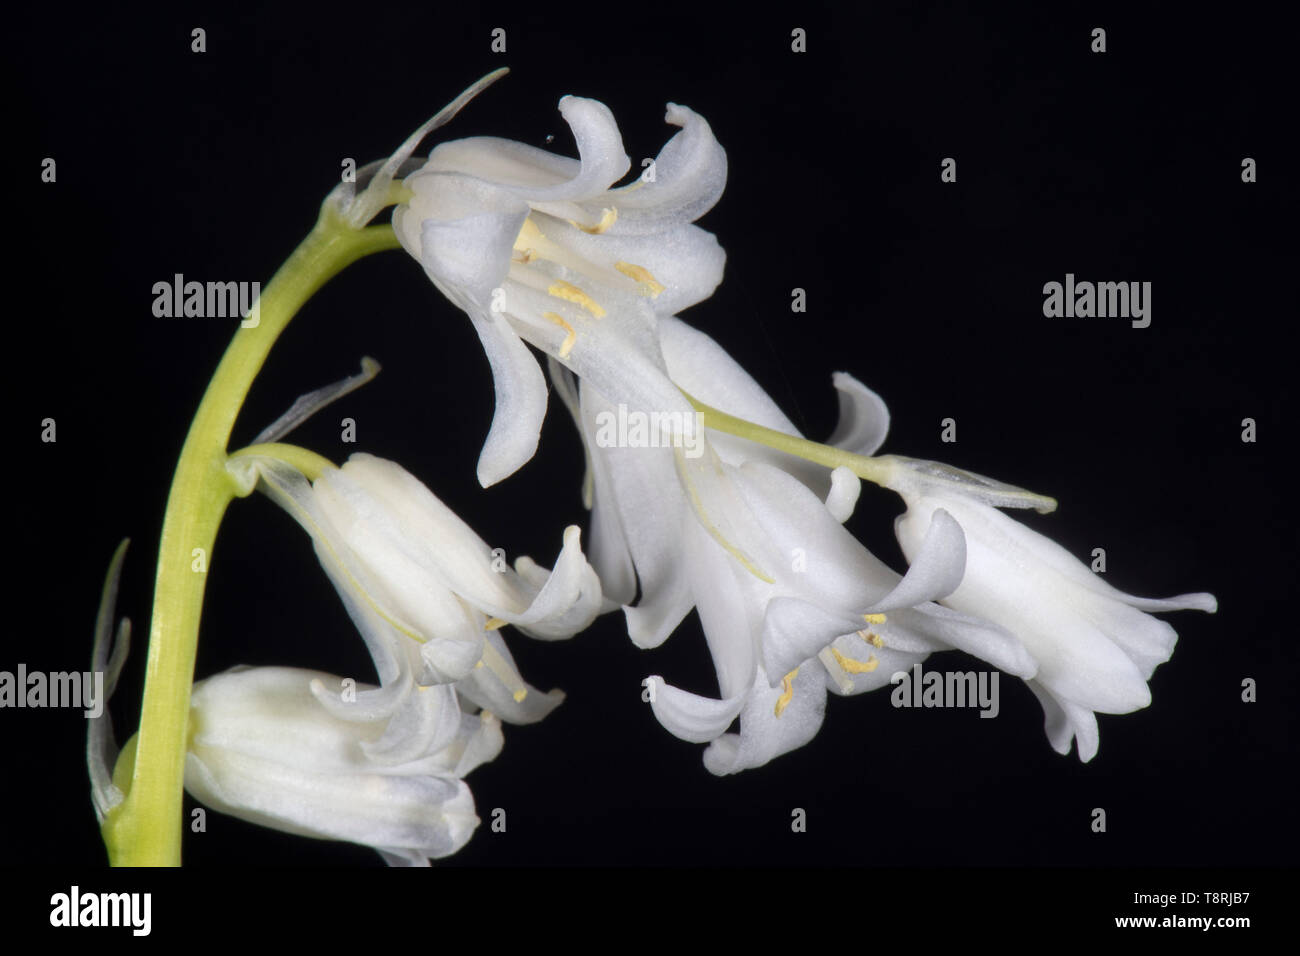 White Spanish bluebell (Hyacinthoides hispanica) flowers against a black background, Berkshire, April - Stock Image